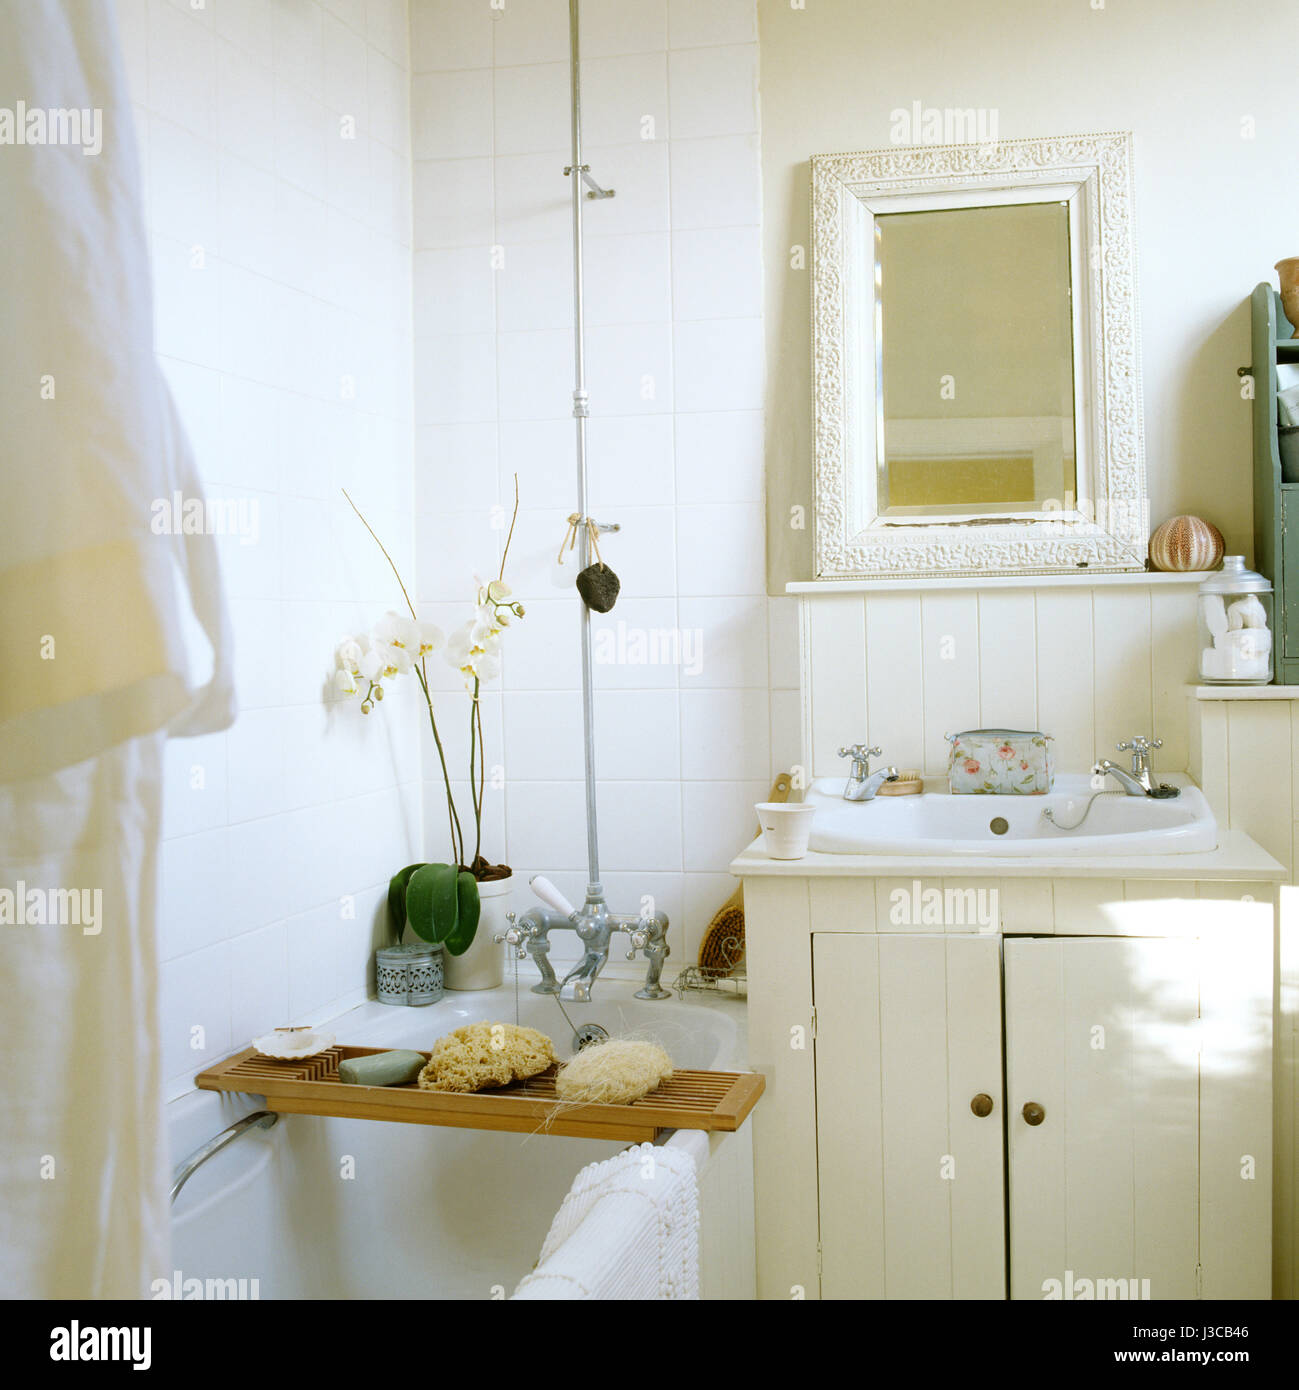 Country style bathroom. - Stock Image